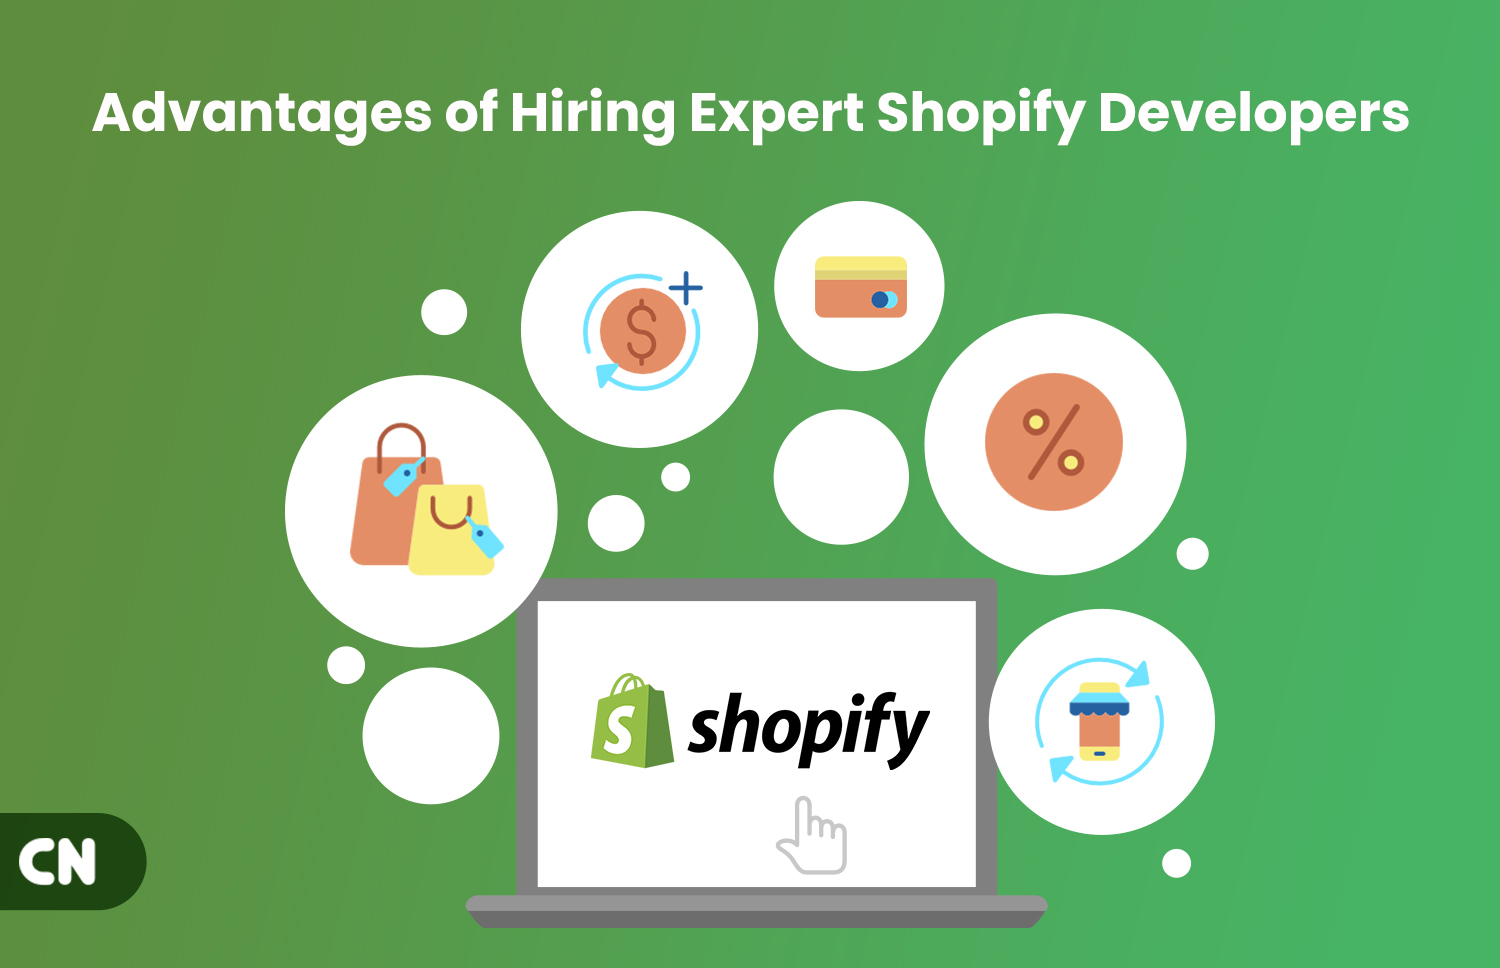 Advantages of Hiring Expert Shopify Developers | Capital Numbers